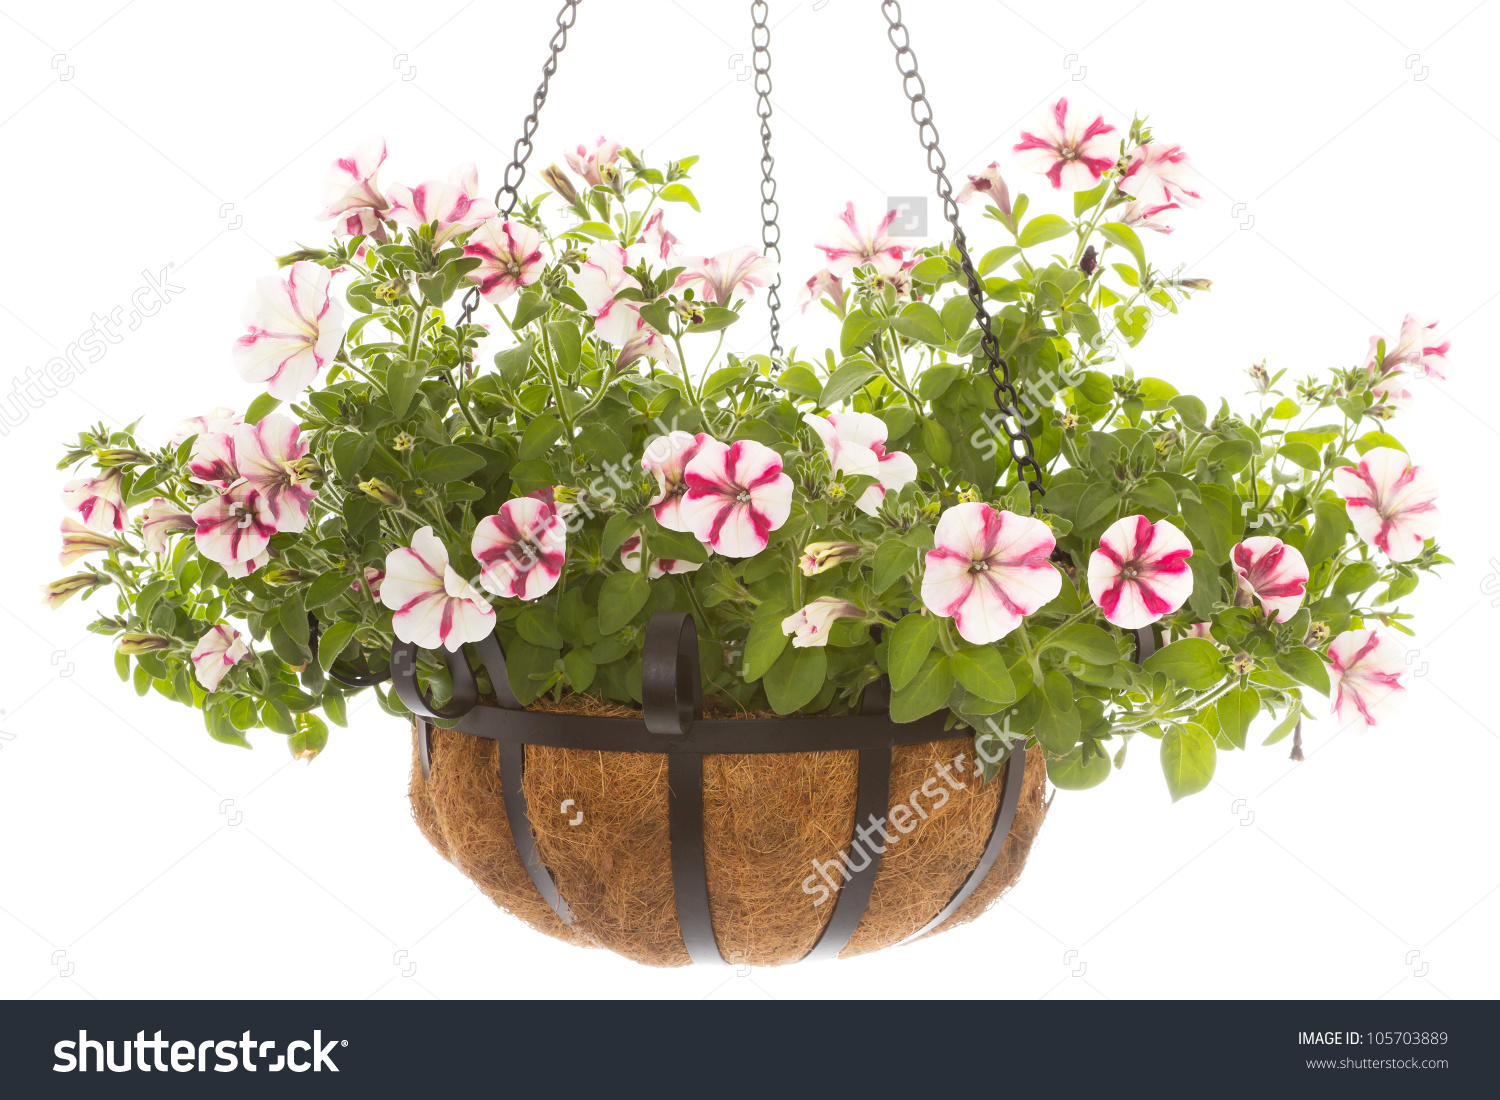 Hanging Basket With A Petunia Over A White Background Stock Photo.